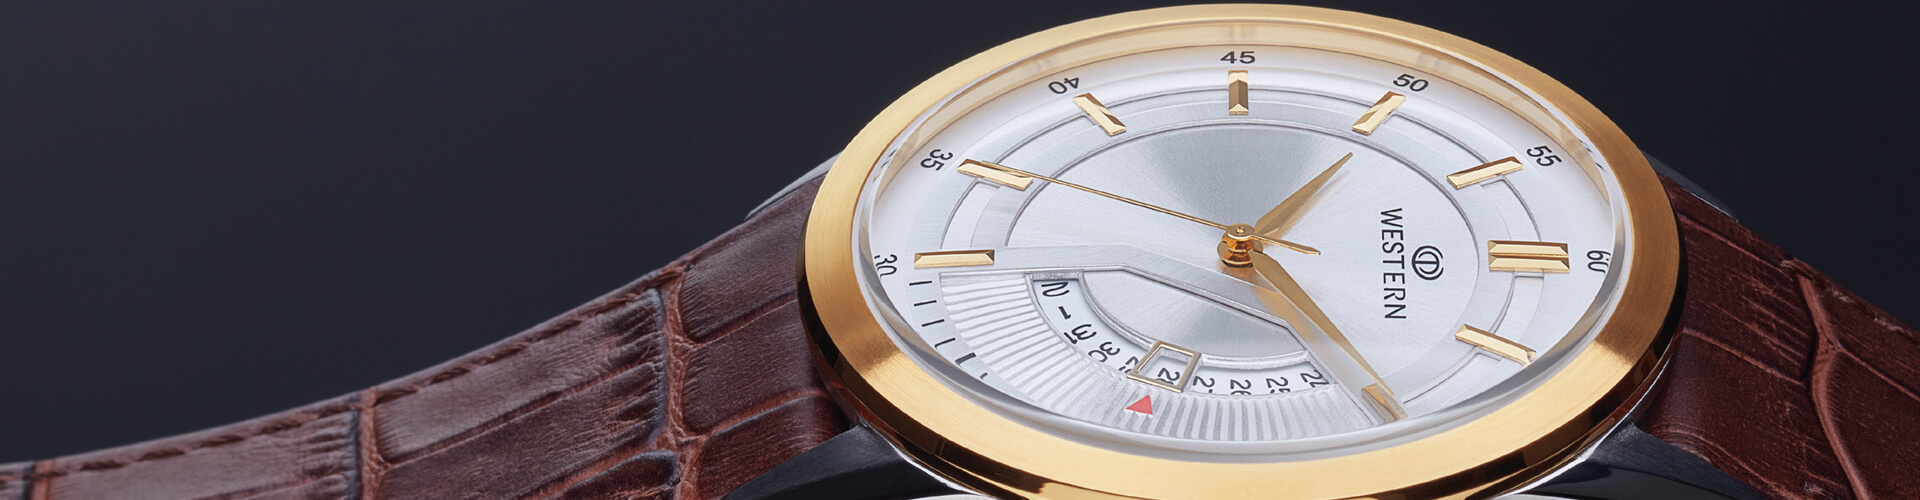 Set the temperature soaring with the Western Watches series